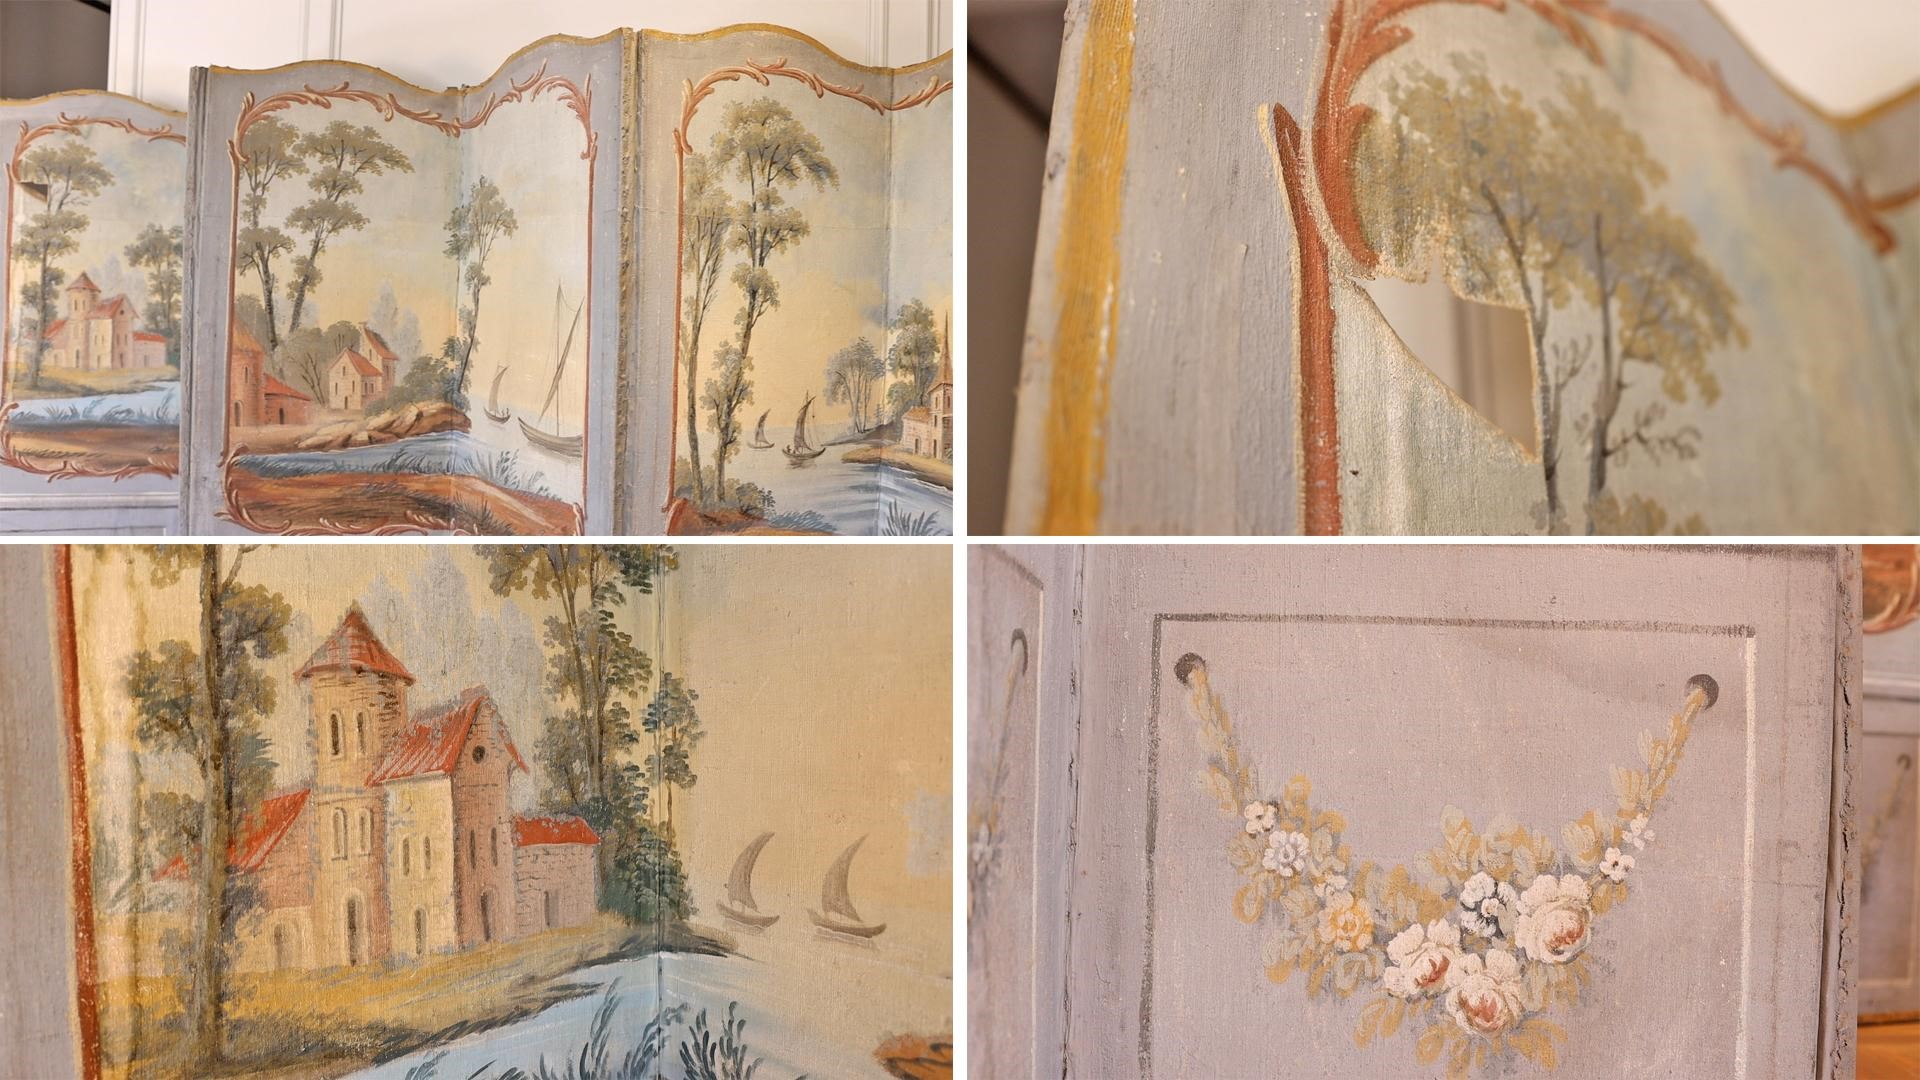 A closer look at the details of the antique decor accordion Chinoiserie screen.